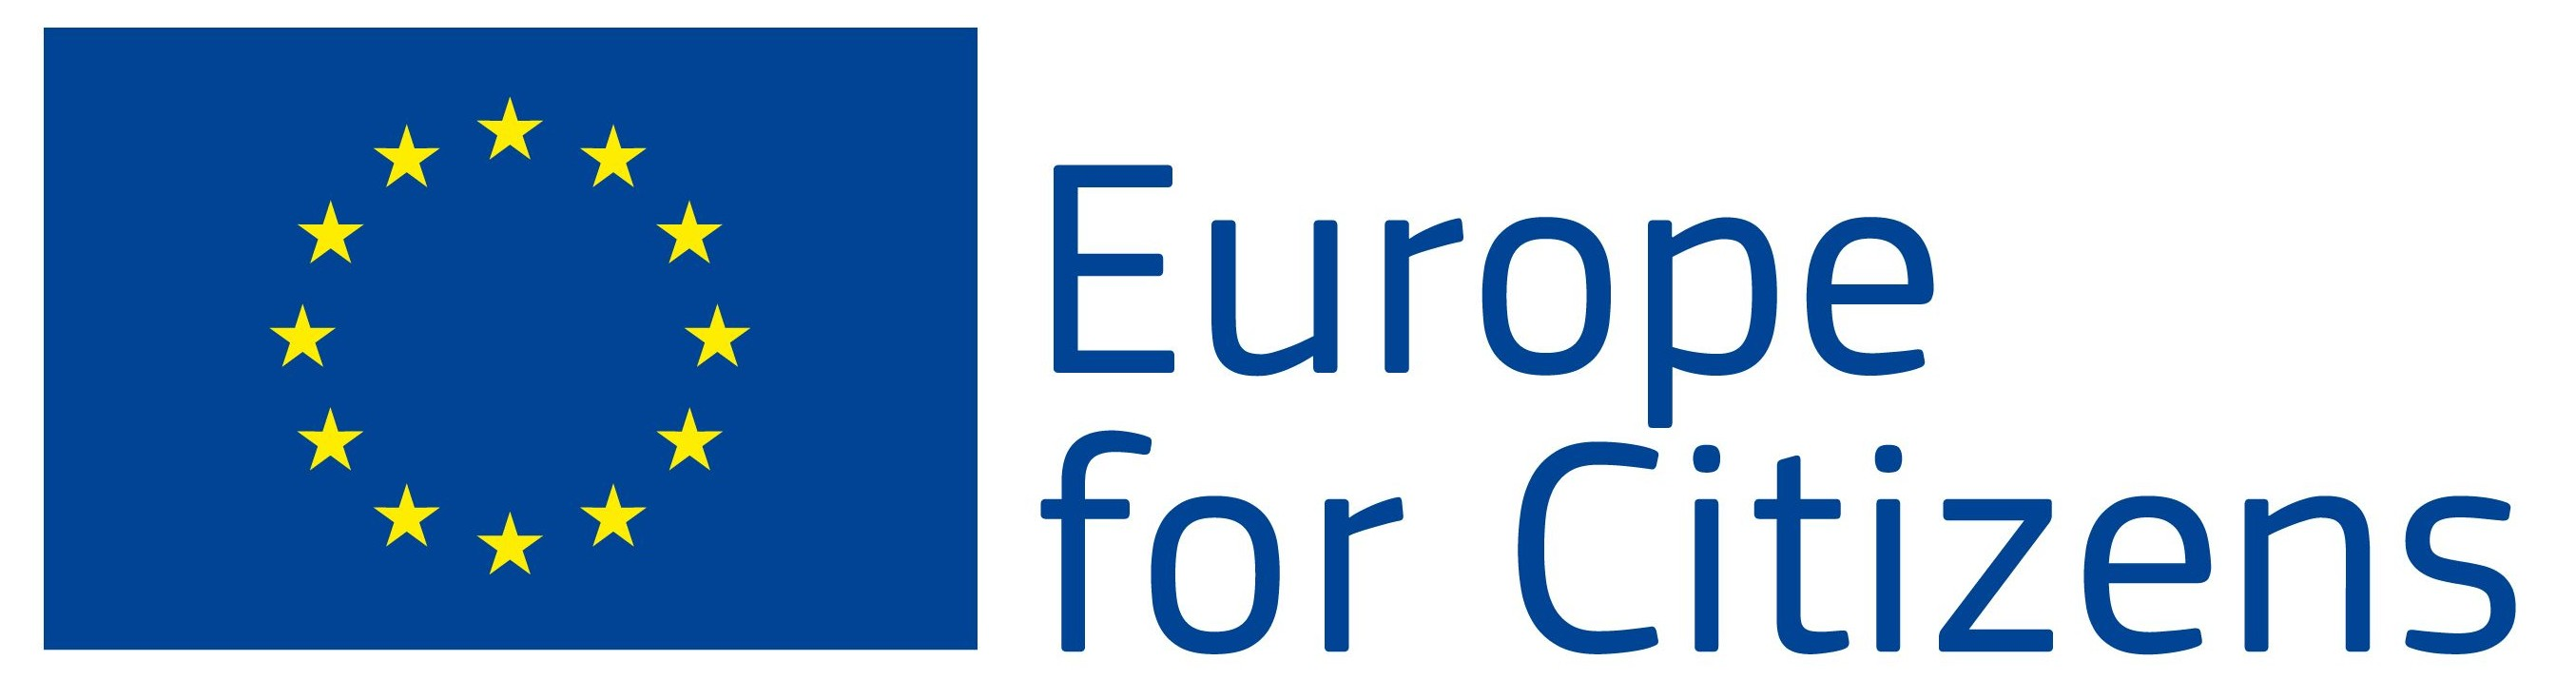 Europe for Citizens logo